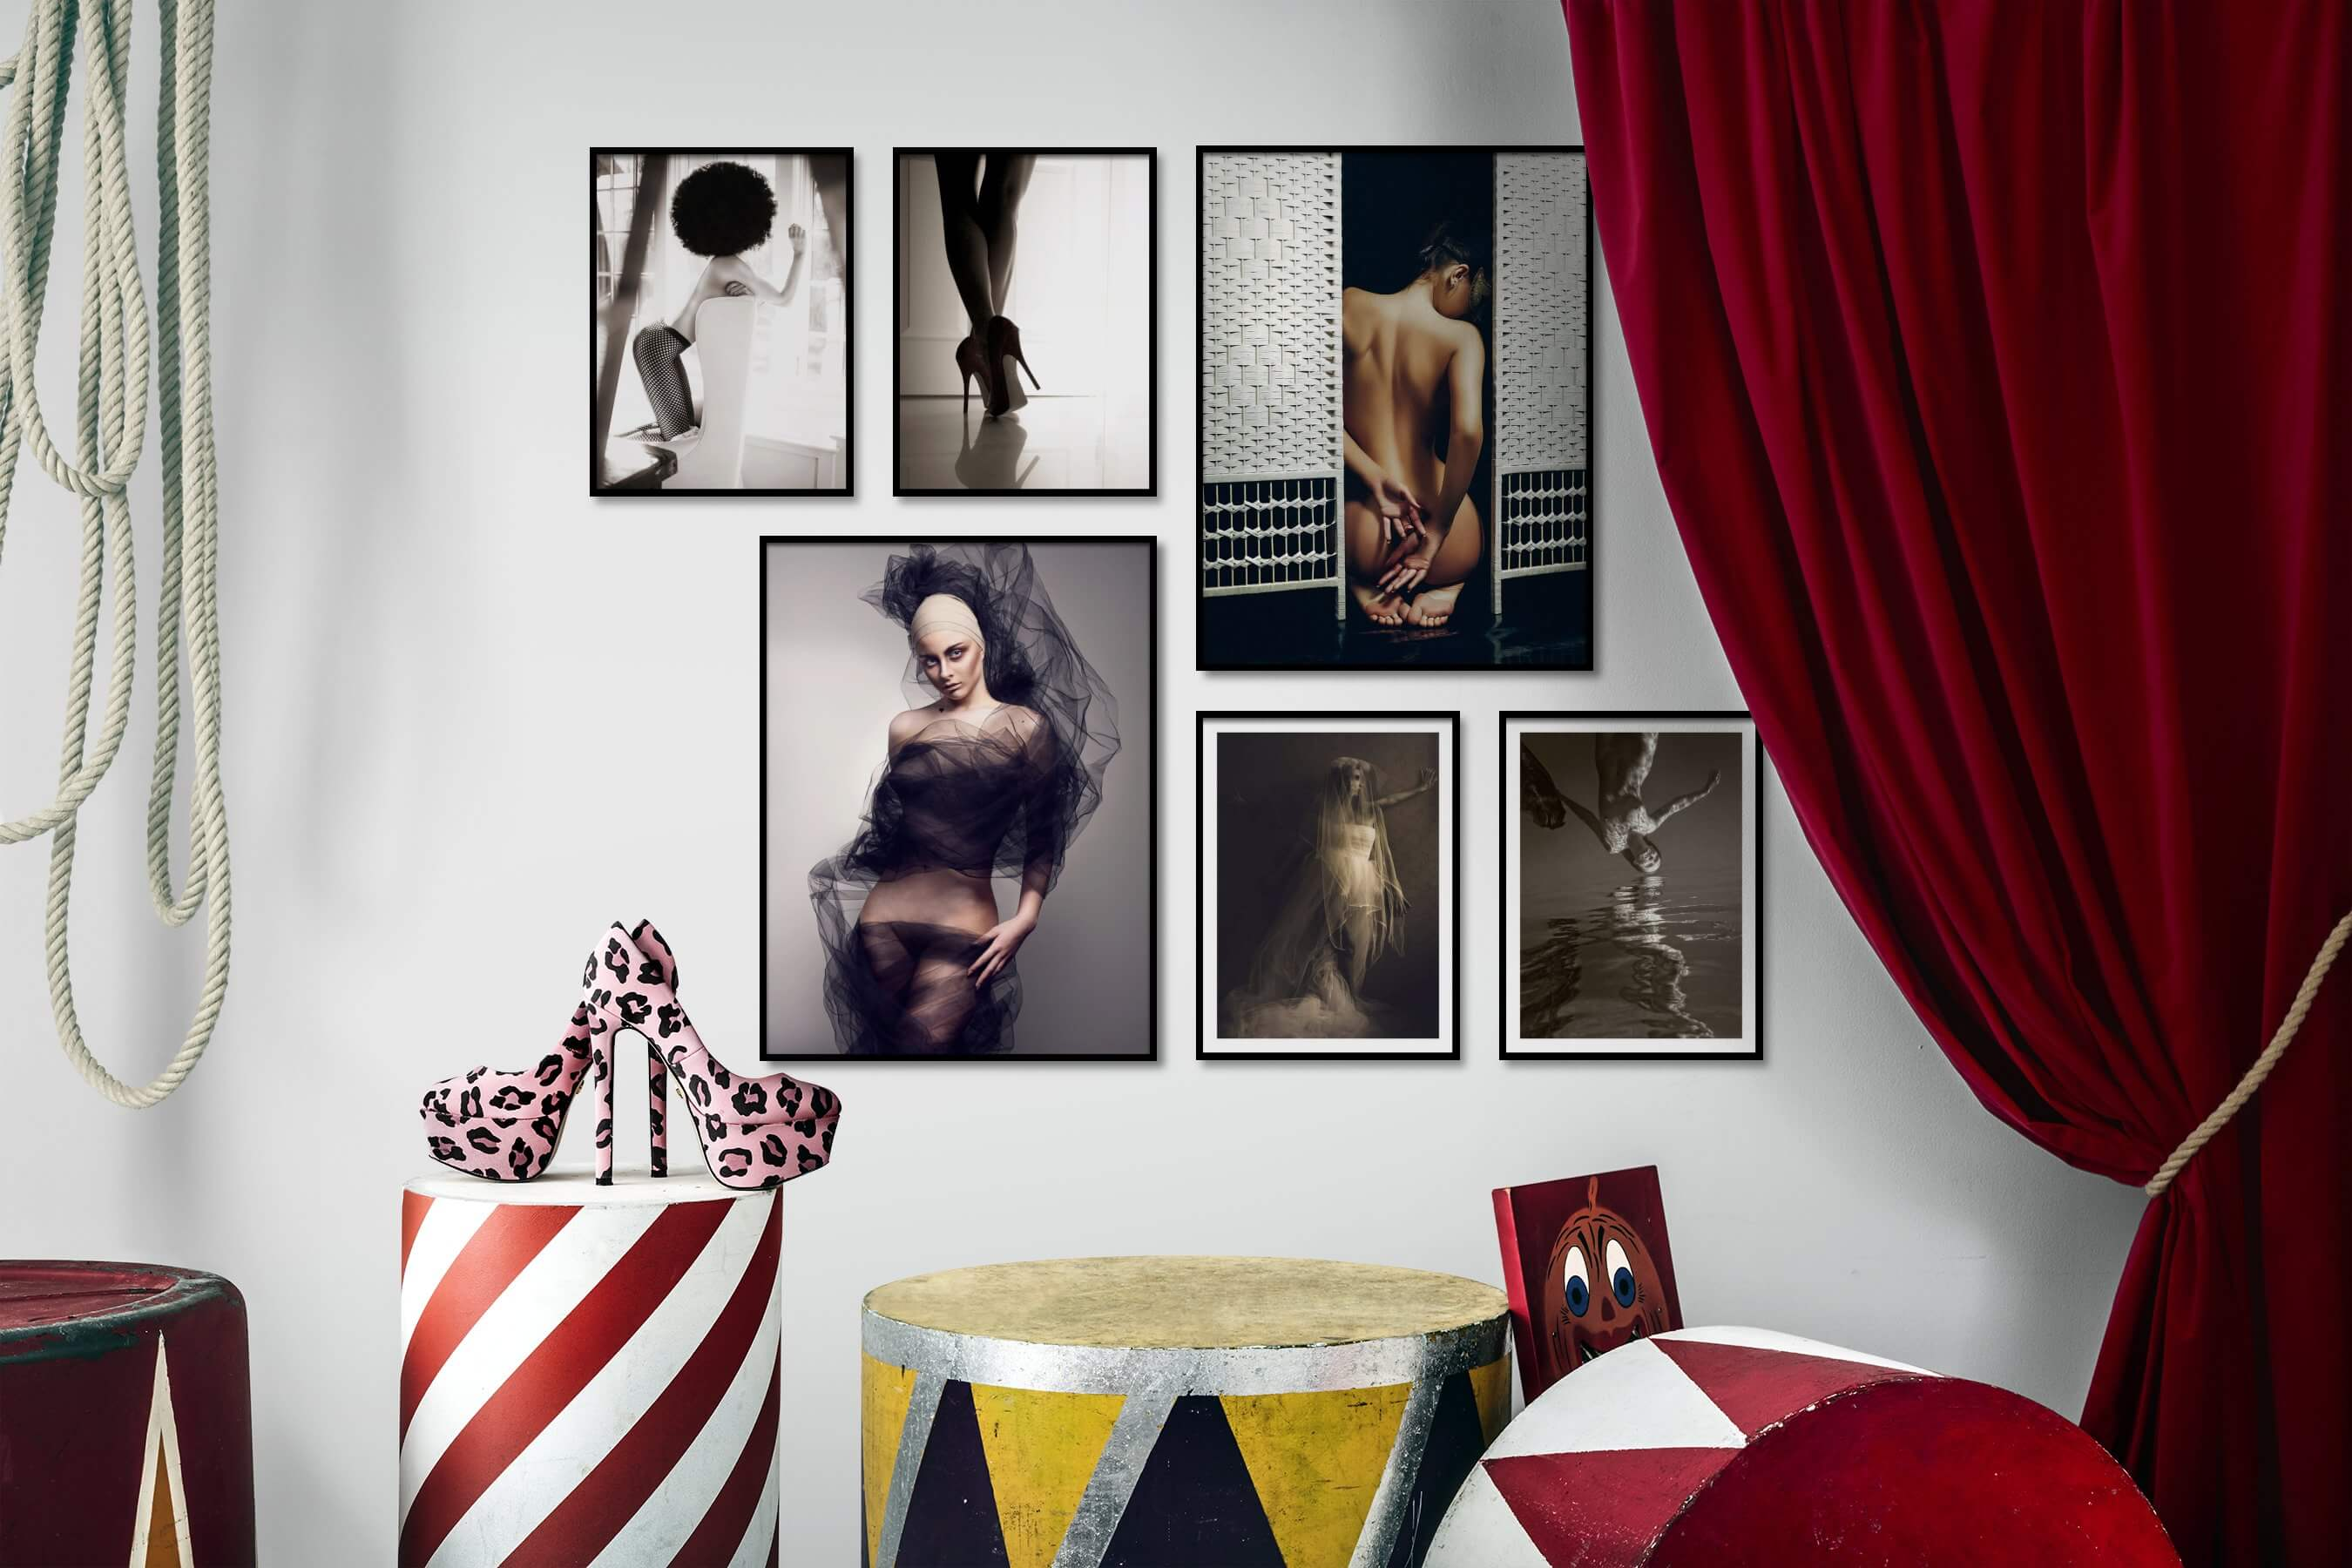 Gallery wall idea with six framed pictures arranged on a wall depicting Fashion & Beauty, Black & White, For the Moderate, Artsy, and Beach & Water